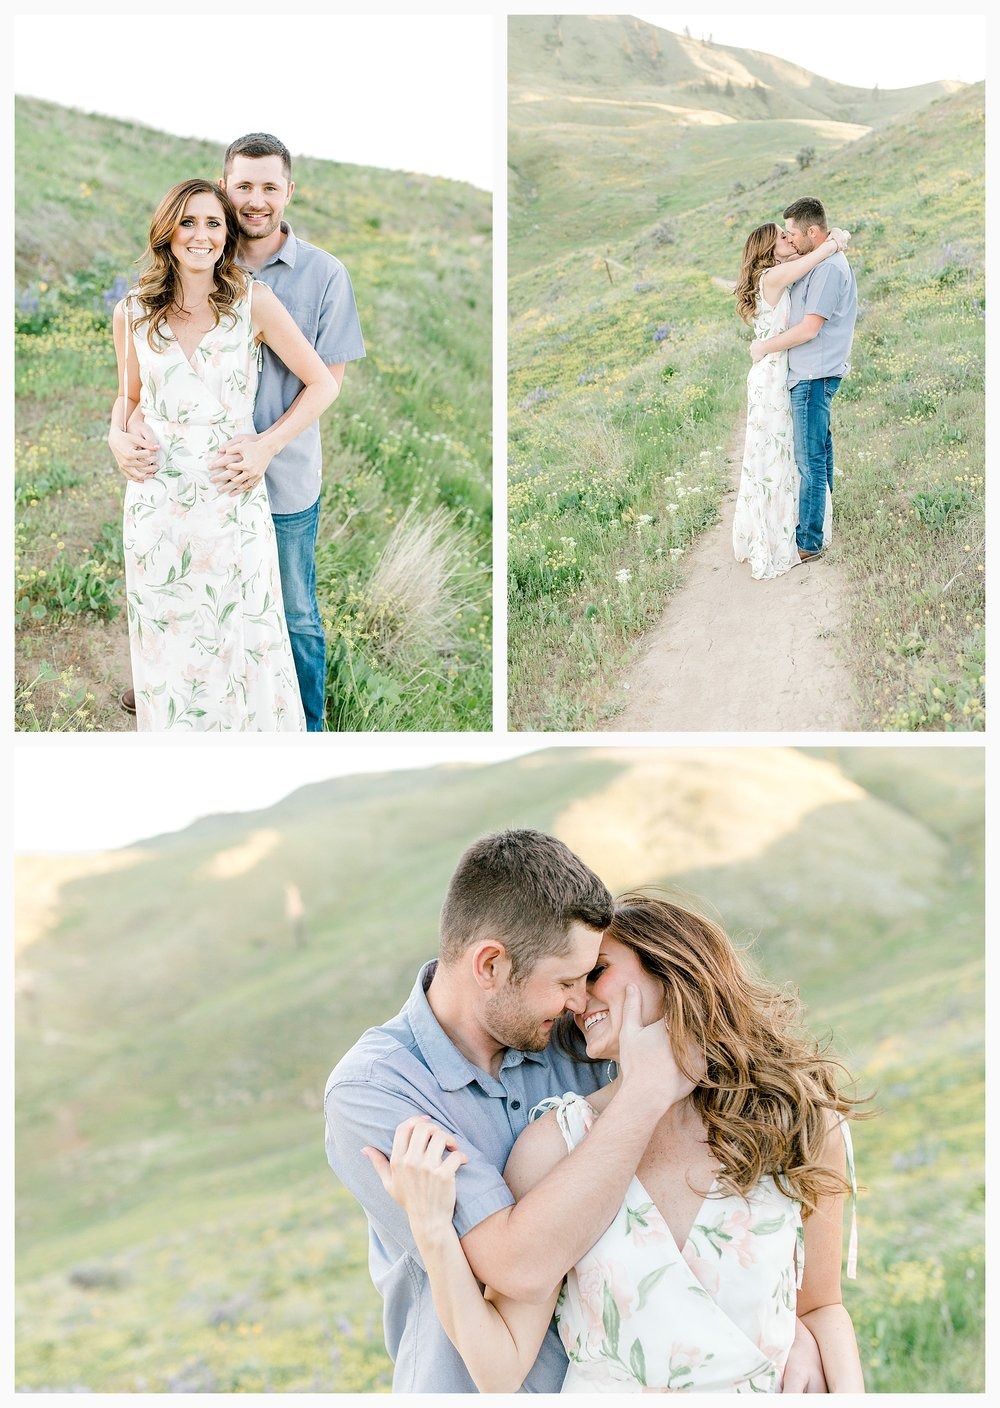 Engagement session amongst the wildflowers in Wenatchee, Washington | Engagement Session Outfit Inspiration for Wedding Photography with Emma Rose Company | Light and Airy PNW Photographer, Seattle Bride_0007.jpg